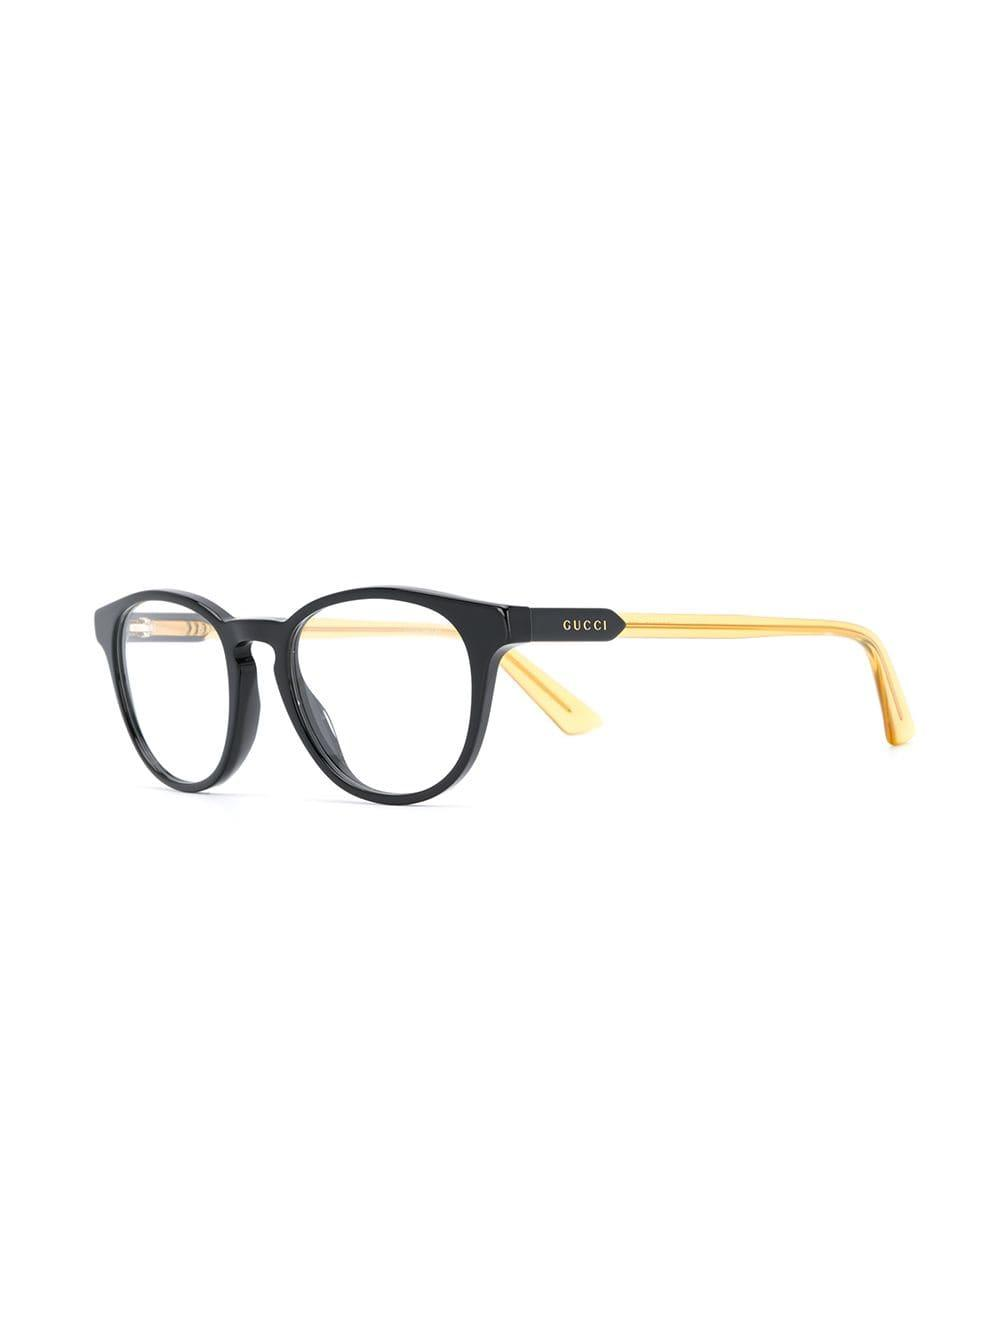 40ce8b97fda Lyst - Gucci Oval Frame Glasses in Yellow for Men